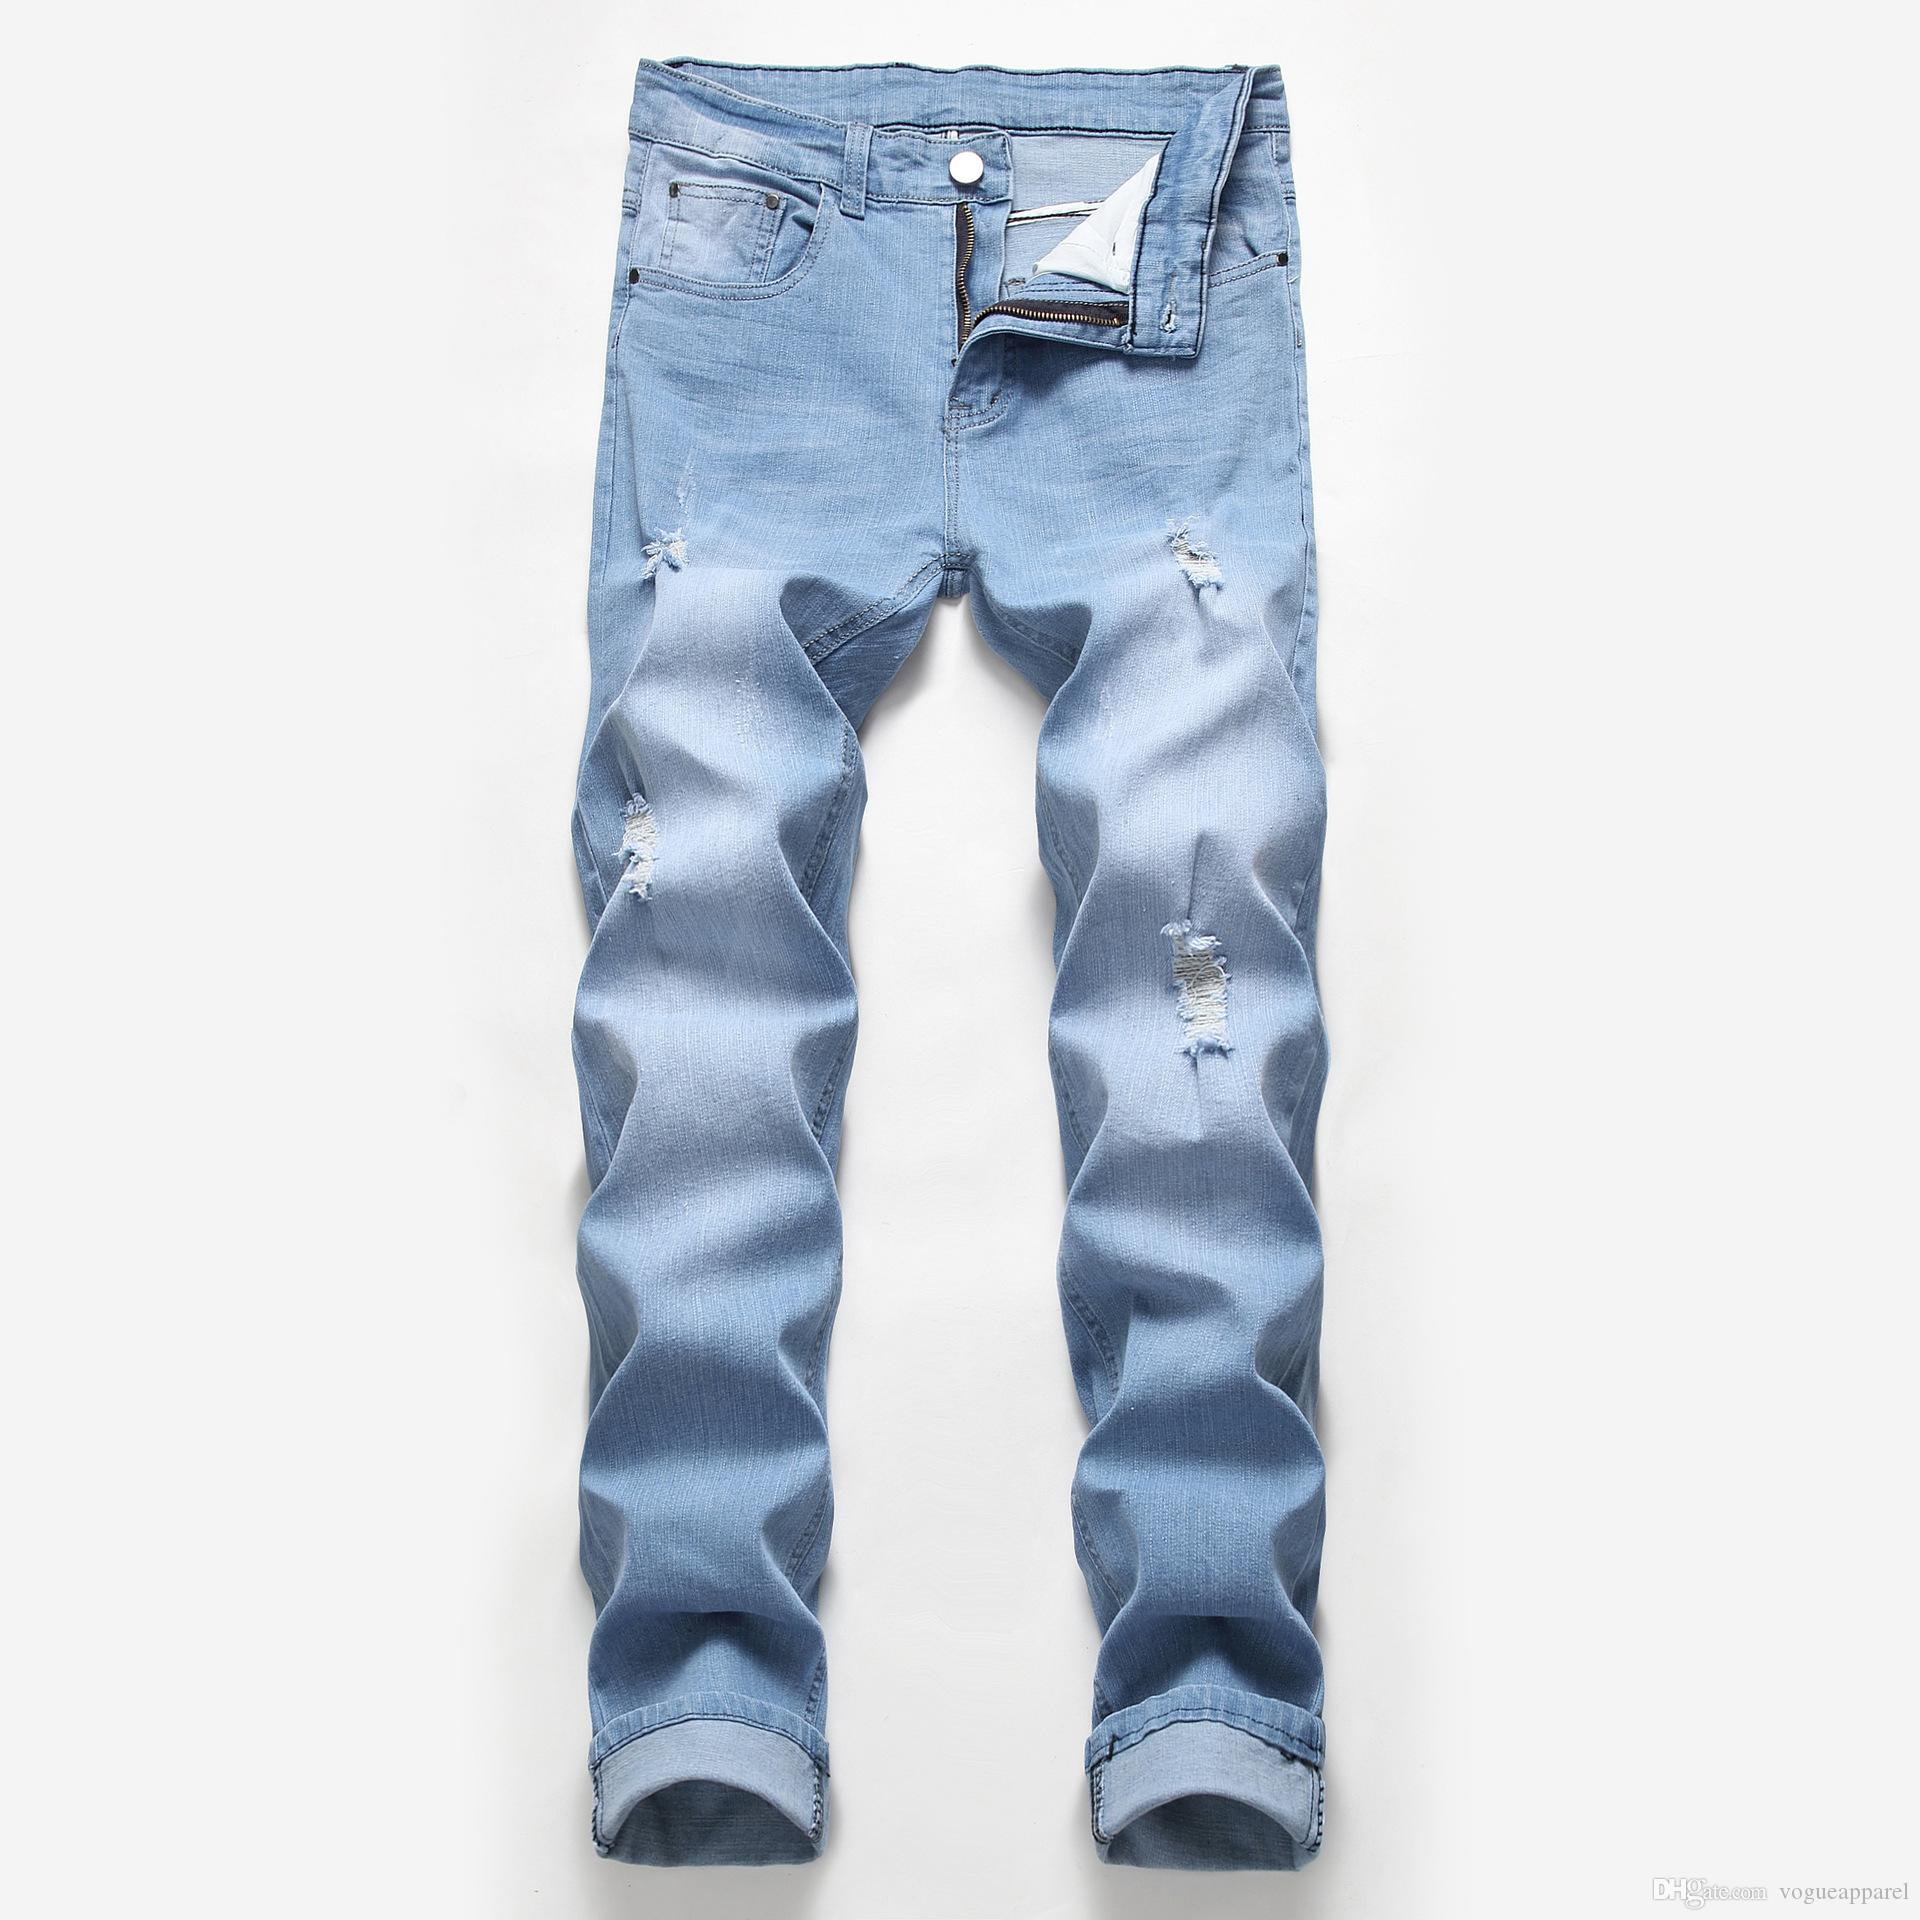 Fashion Brand Designer Skinny Jeans Slim Fit Motorcycle Biker Jeans Causal Denim Pants Streetwear Cool For Men Distressed Ripped Jeans